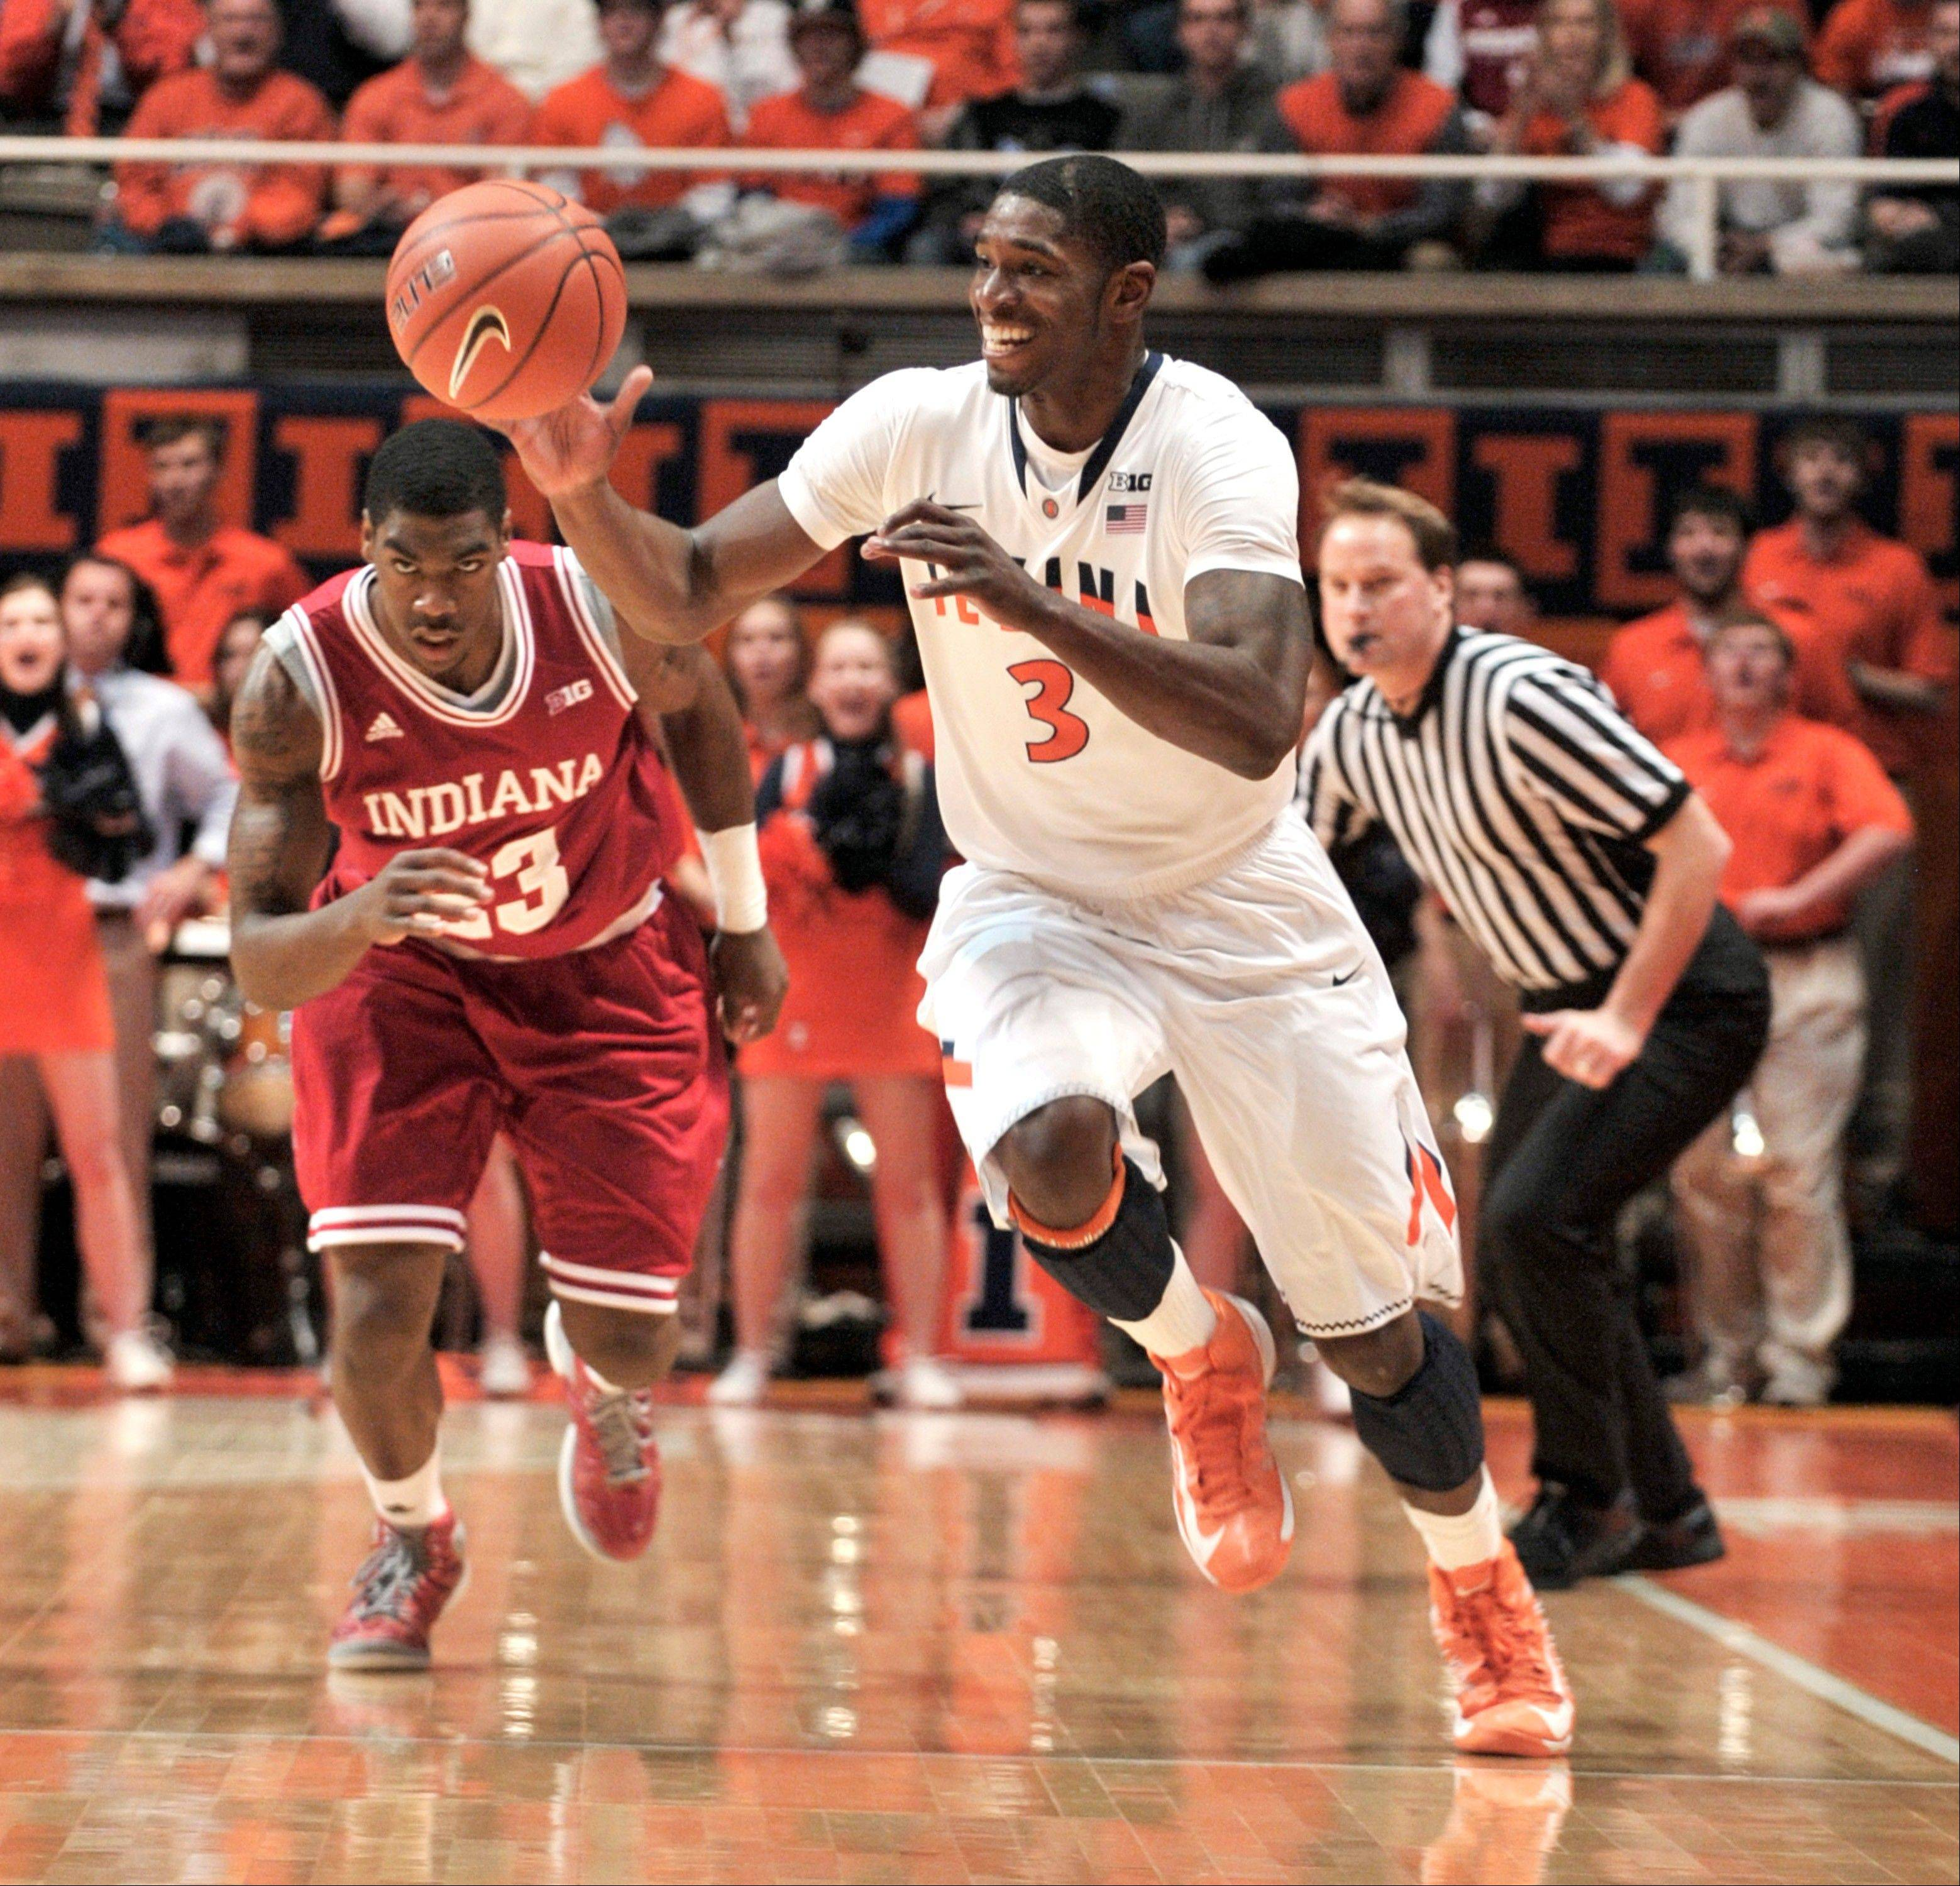 Illinois' Brandon Paul steals the ball in front of Indiana's Remy Abell during Thursday's first half at Assembly Hall in Champaign.